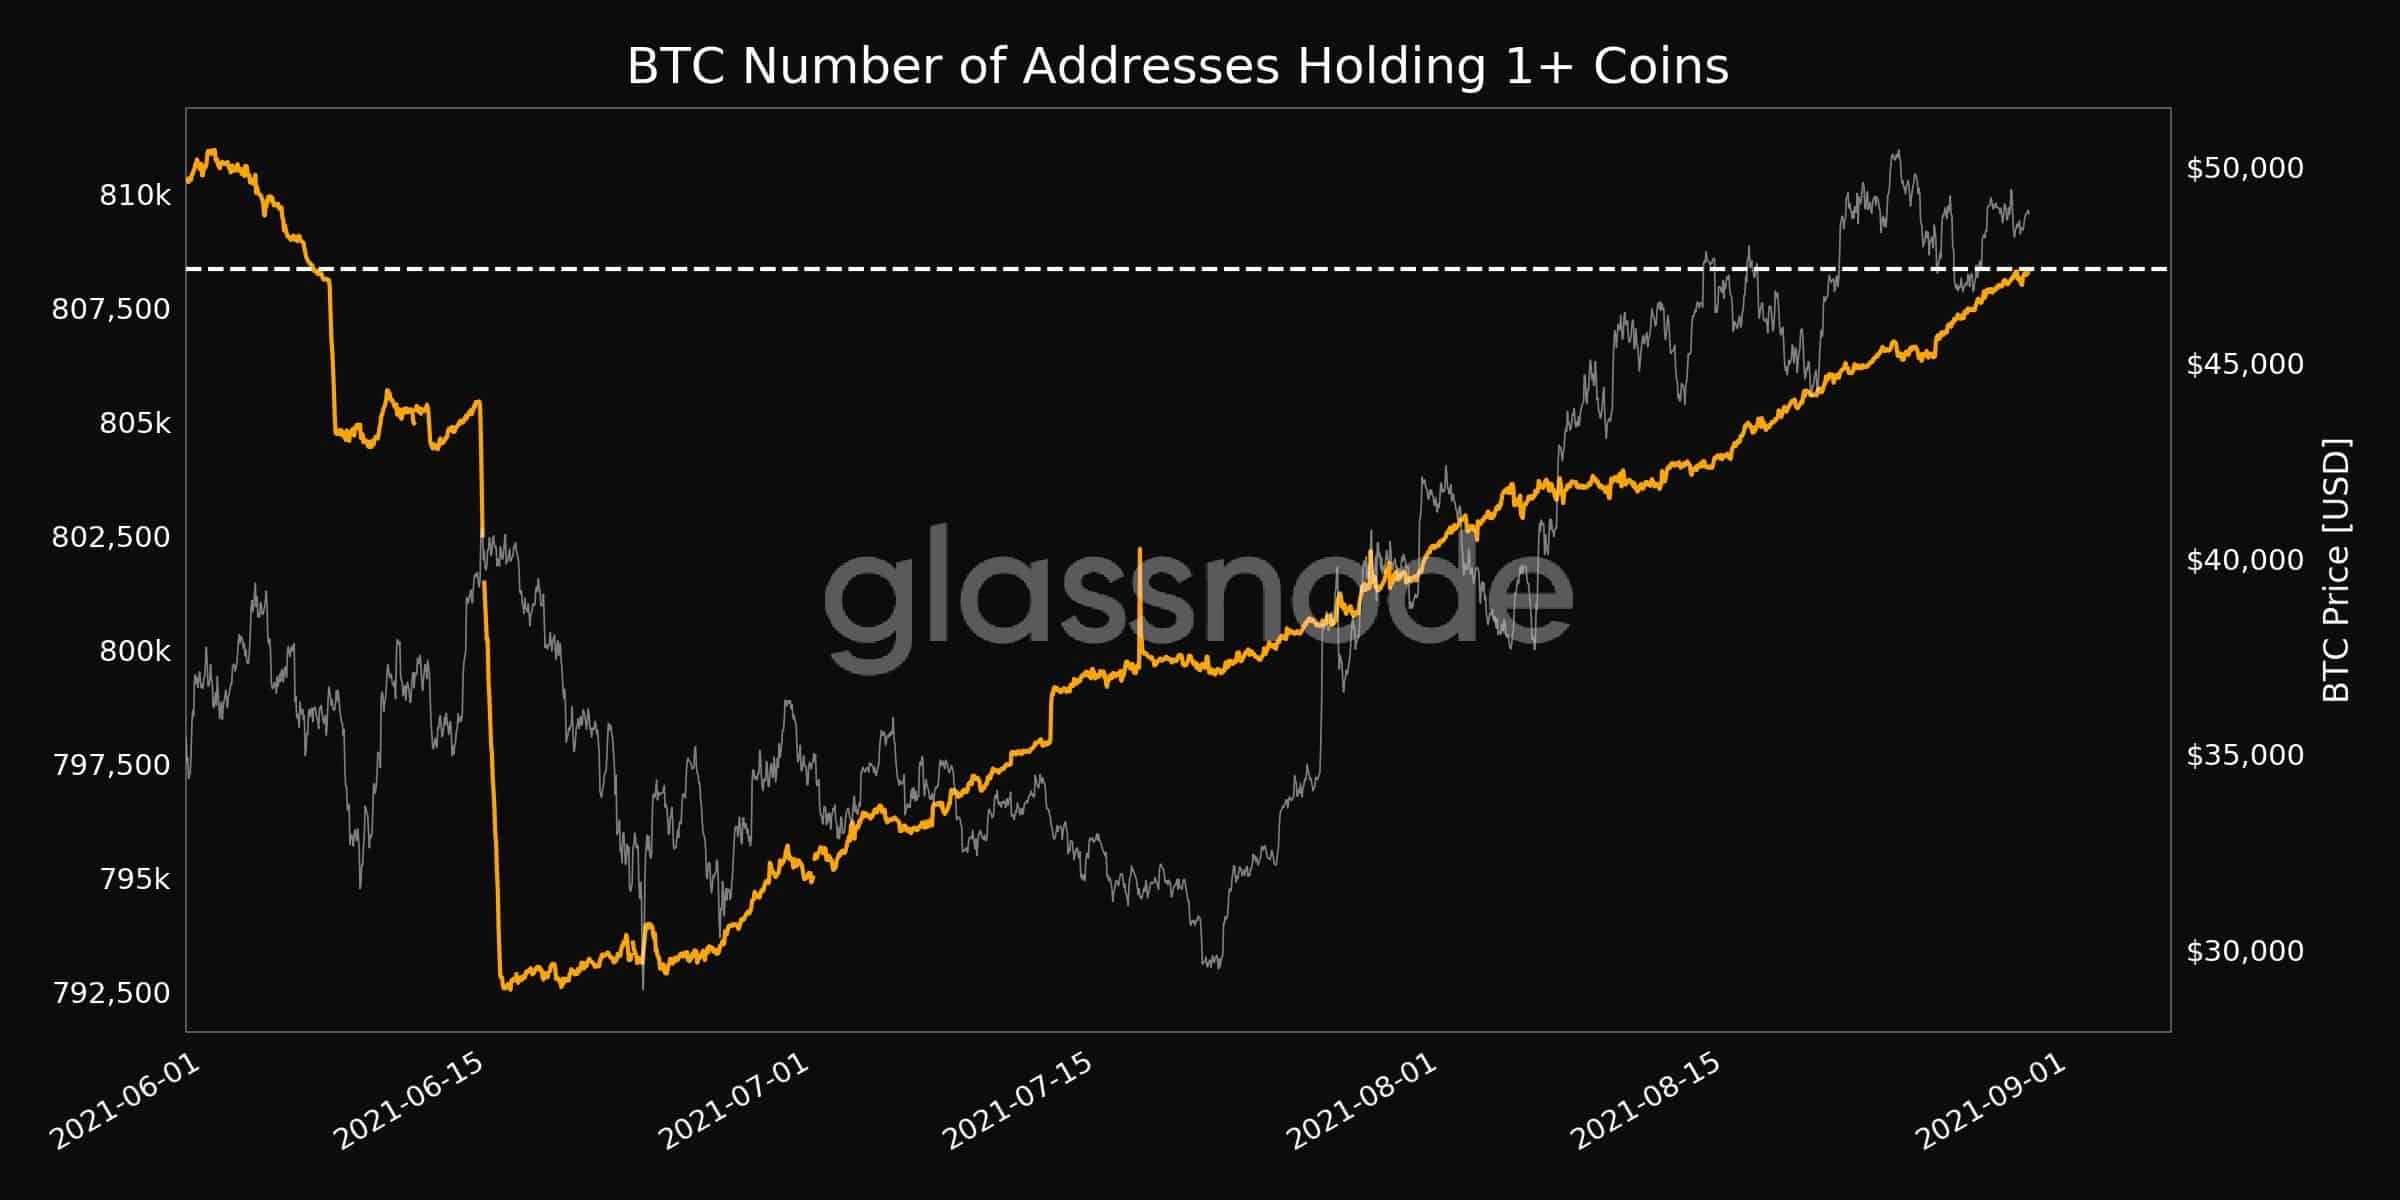 Bitcoin Wholecoiners. Source: Glassnode